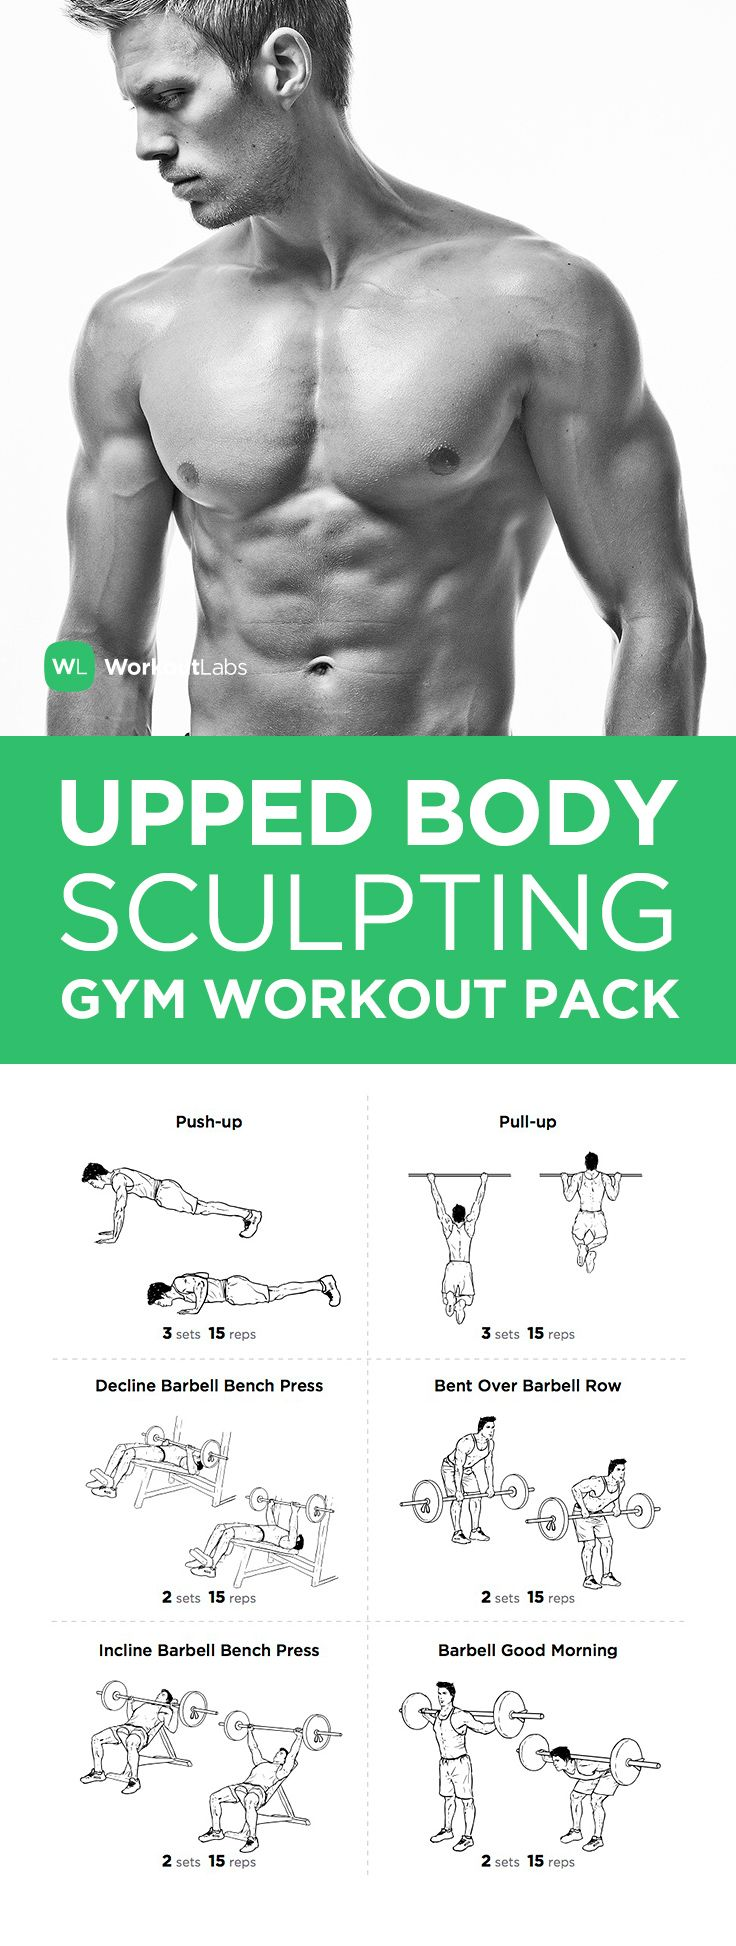 FITNESS - Visit https://WorkoutLabs.com/workout-packs/upper-body-sculpting-gym-workout-pack-for-men-women to download this Upper Body Sculpting Gym Workout Pack for Men & Women